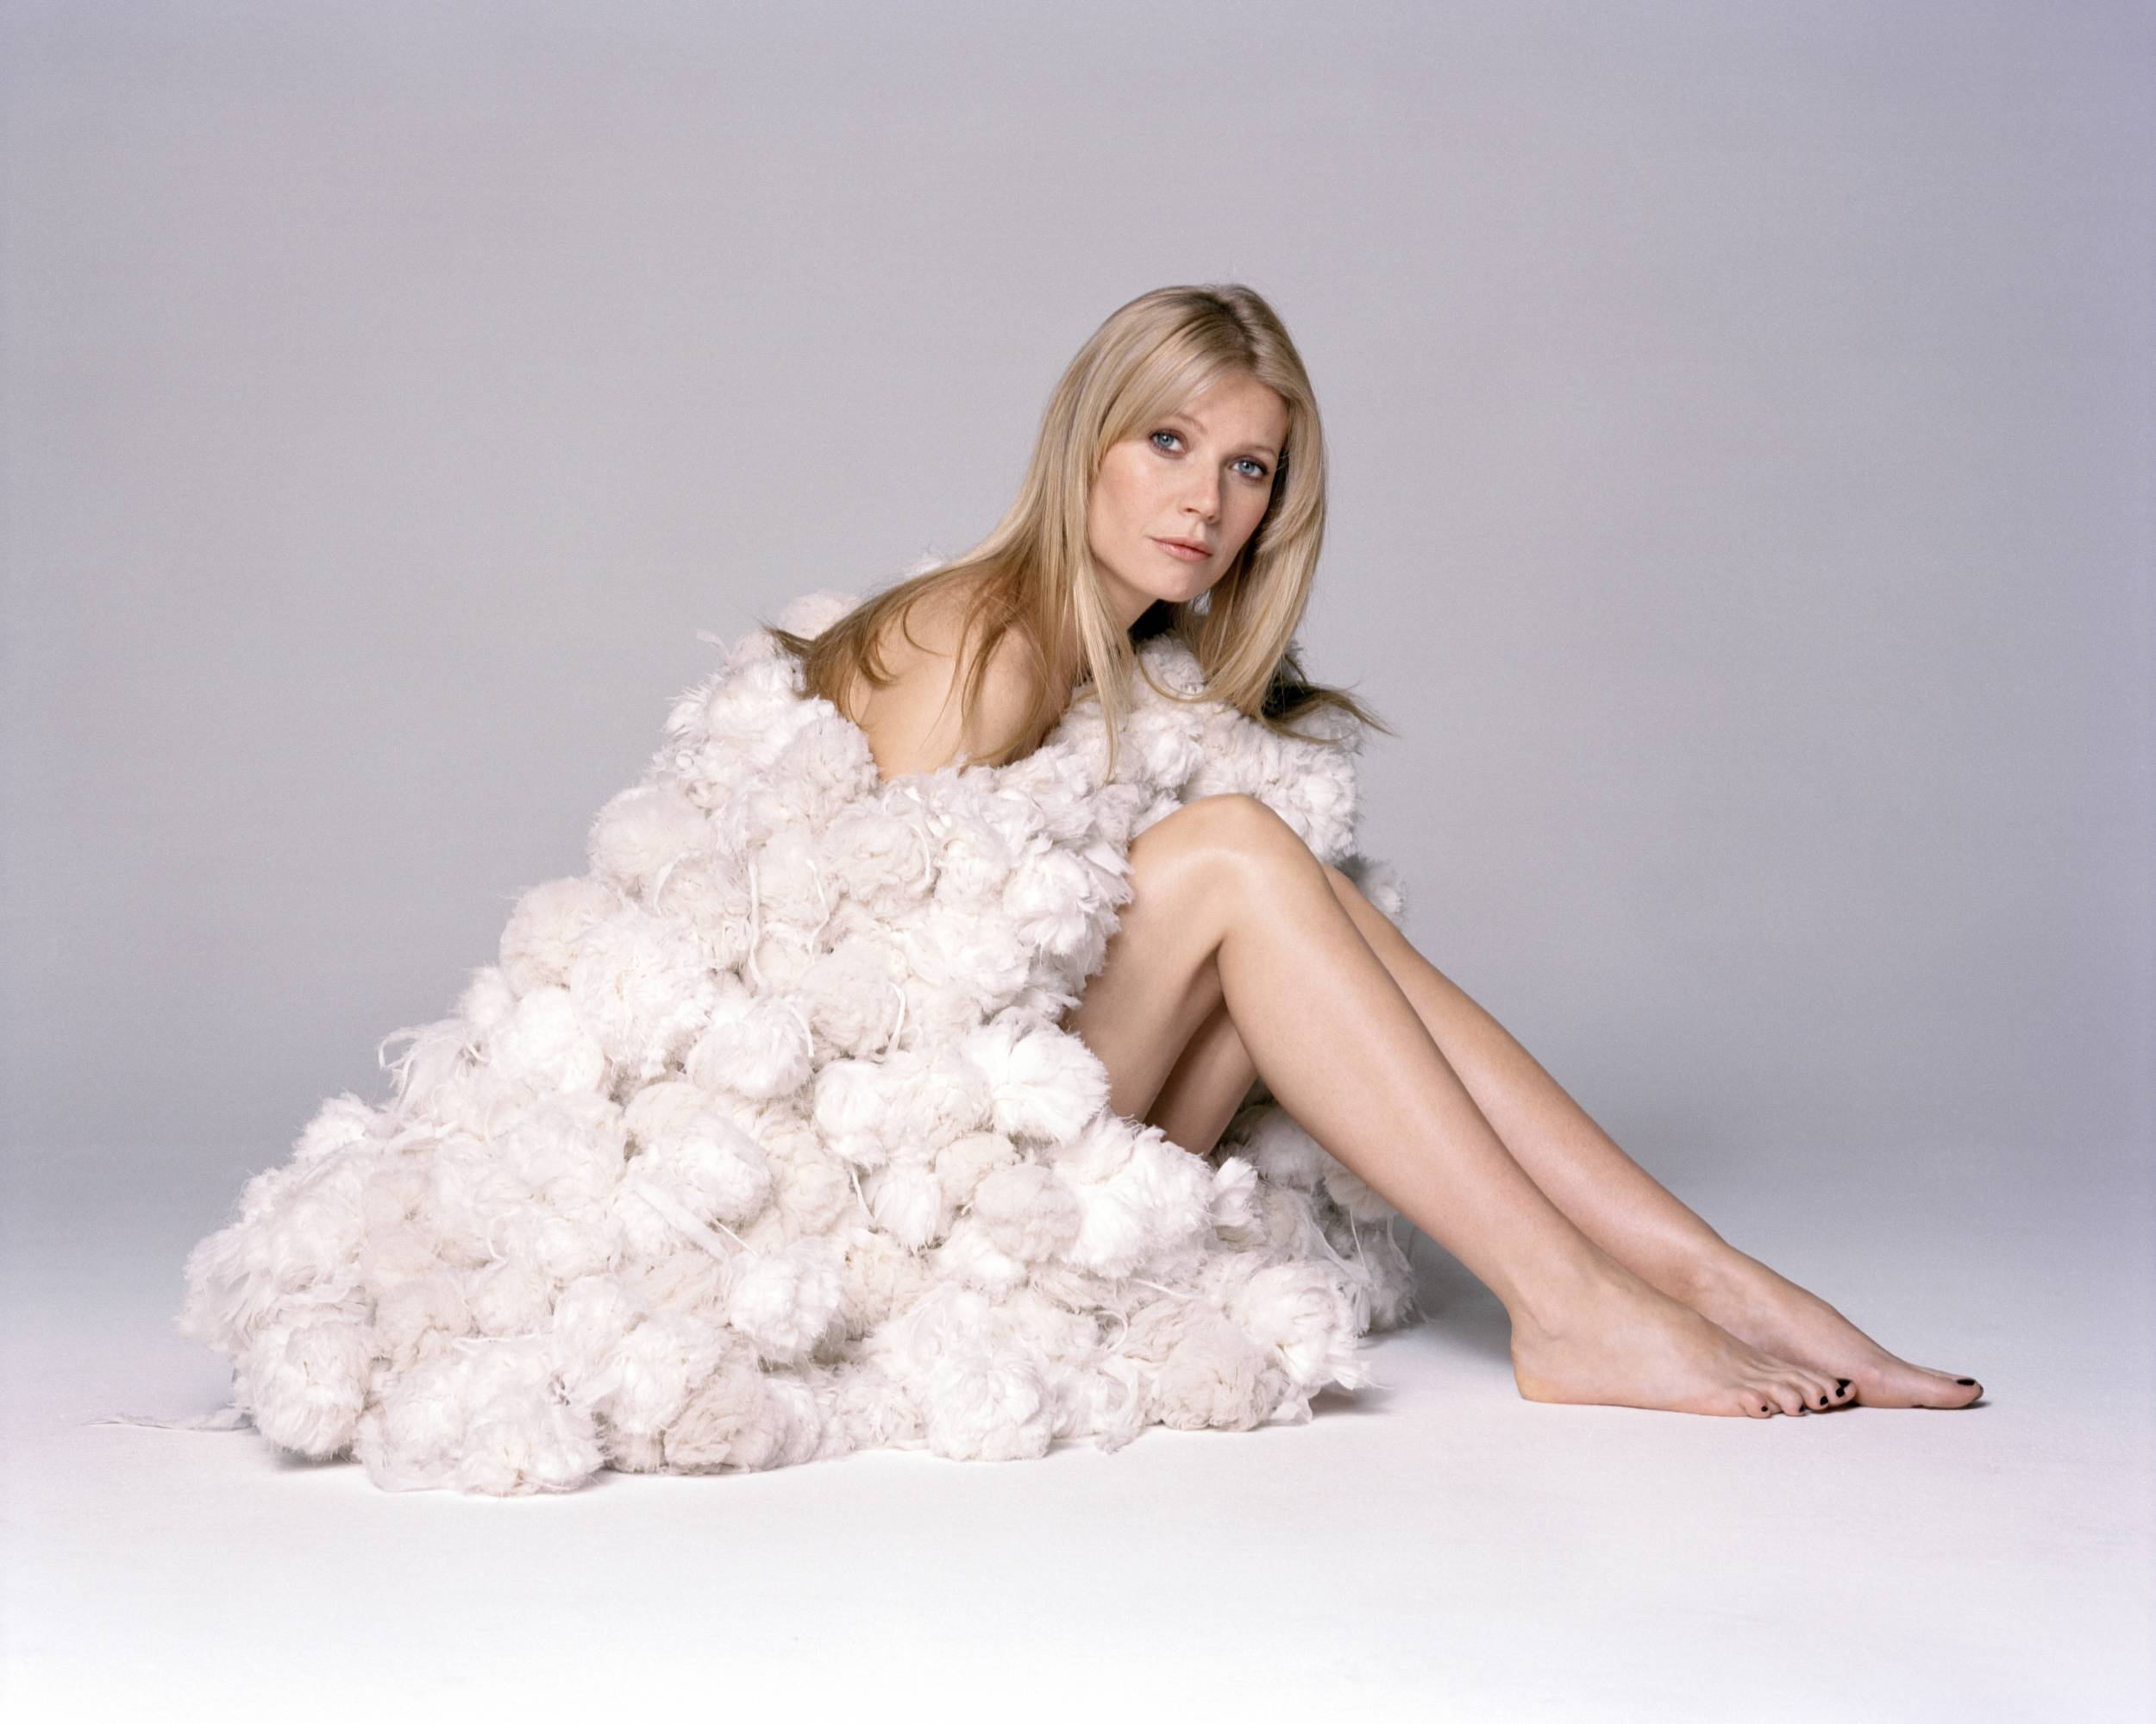 Gwynet Paltrow photo #36908